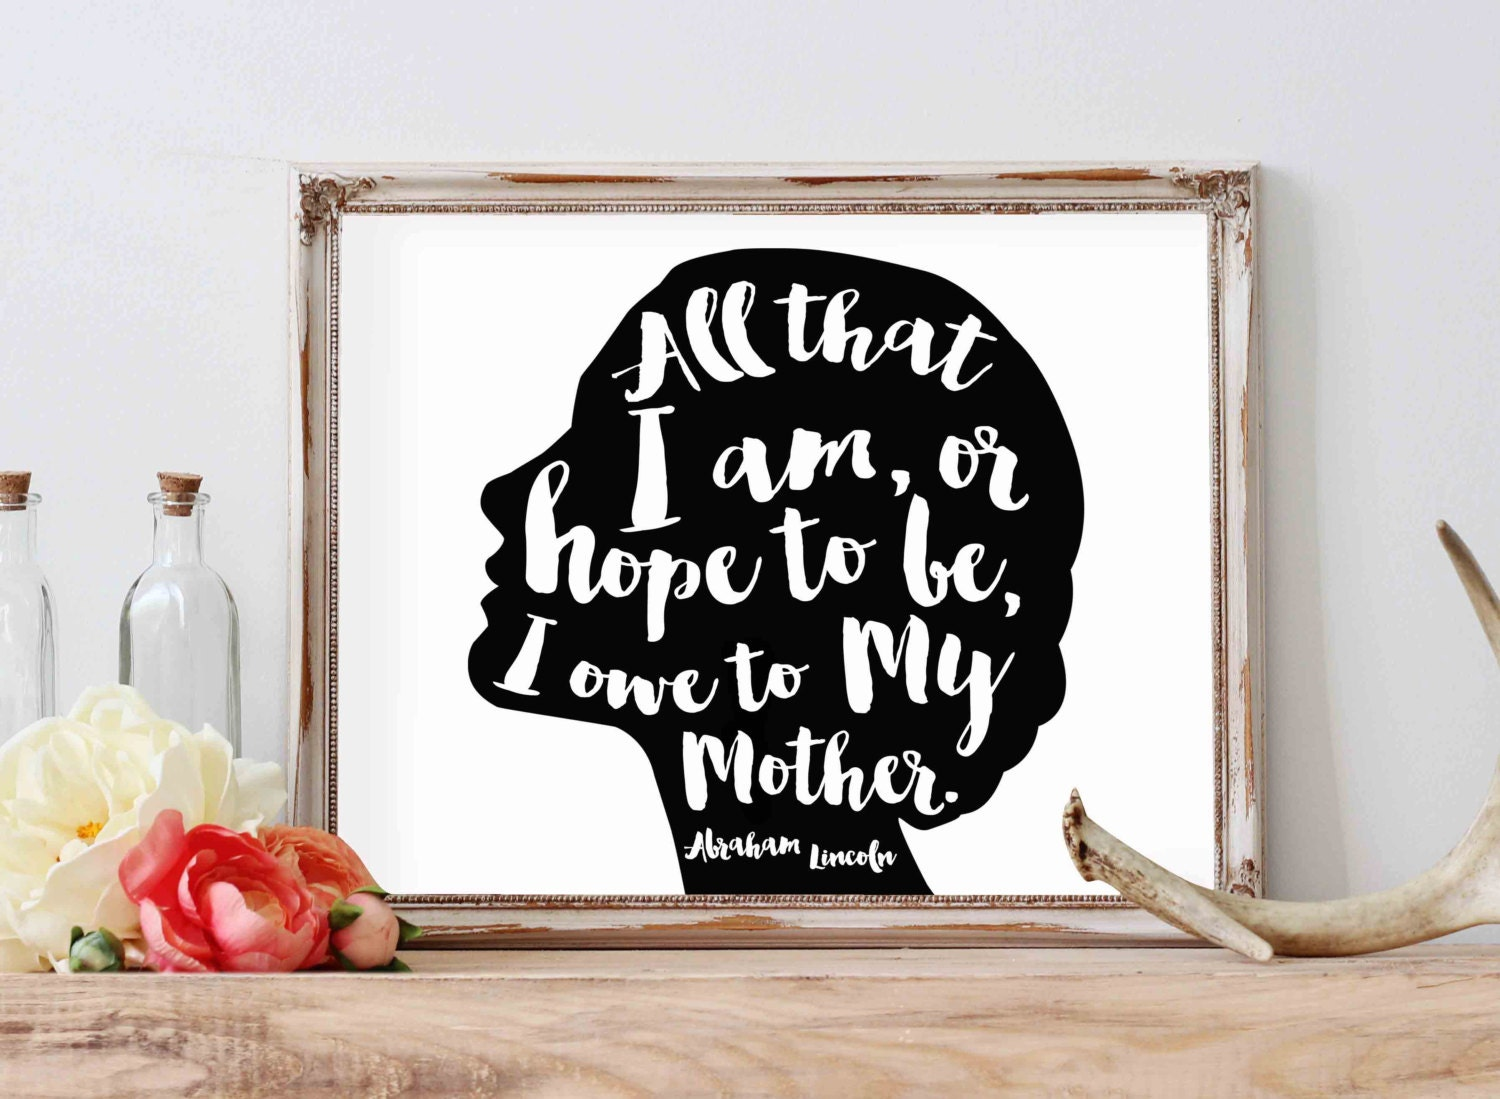 All That I Am or Hope to Be I Owe to My Mother- Abraham Lincoln (8x10 print)